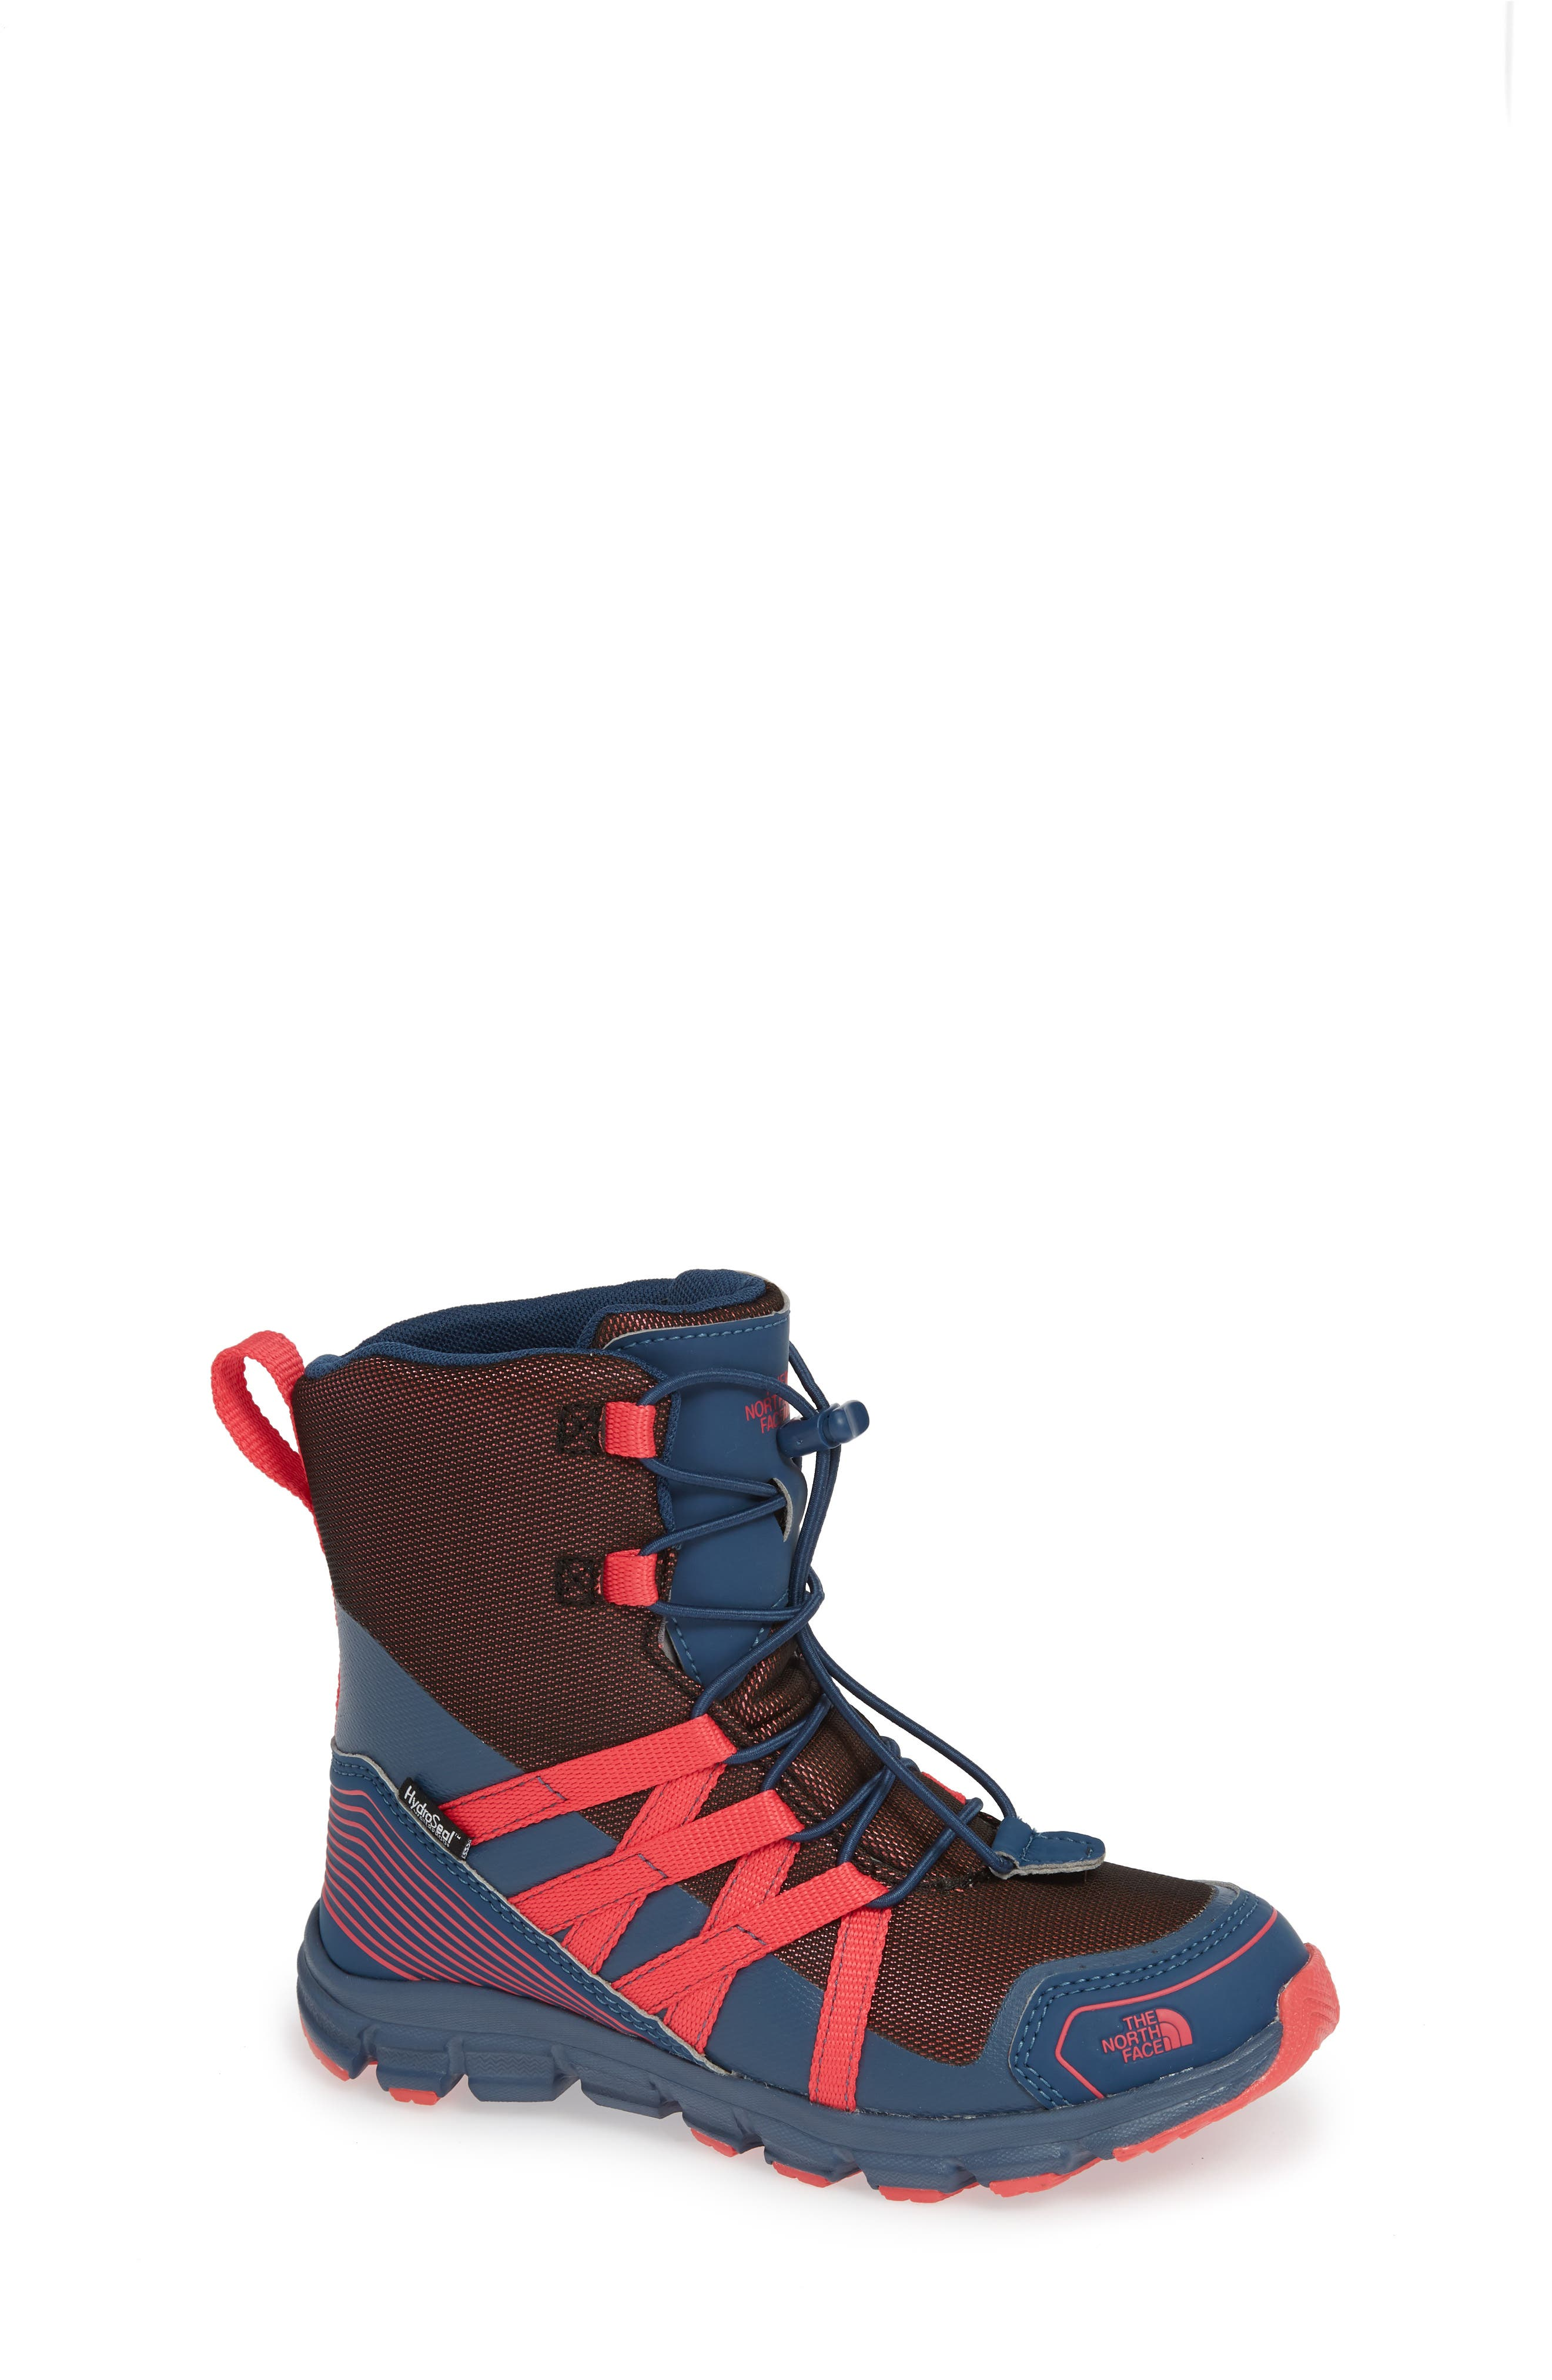 Junior Winter Sneaker Waterproof Insulated Boot,                         Main,                         color, BLUE WING TEAL/ ATOMIC PINK